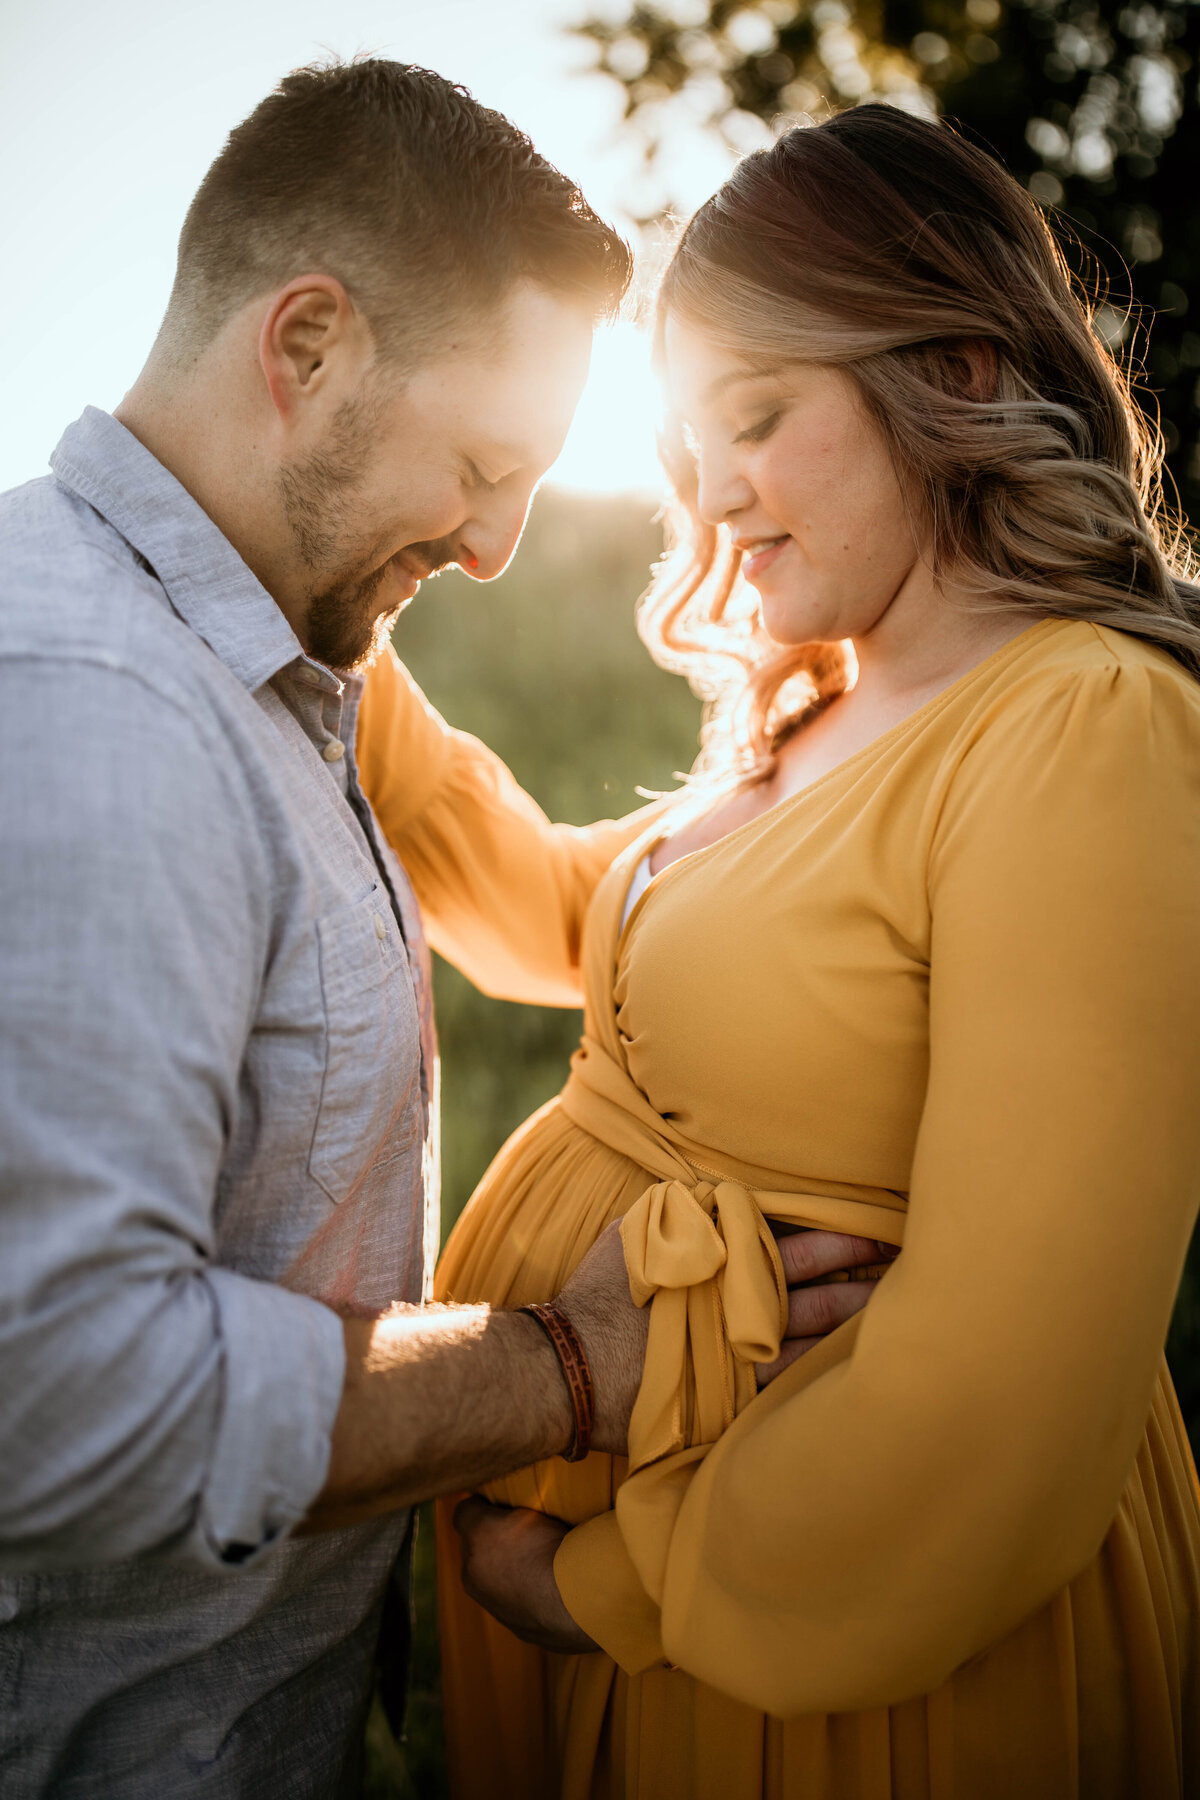 Ale Stang Andrea Corwin Photography Maternity Photographer Wichita Kansas (14 of 70)